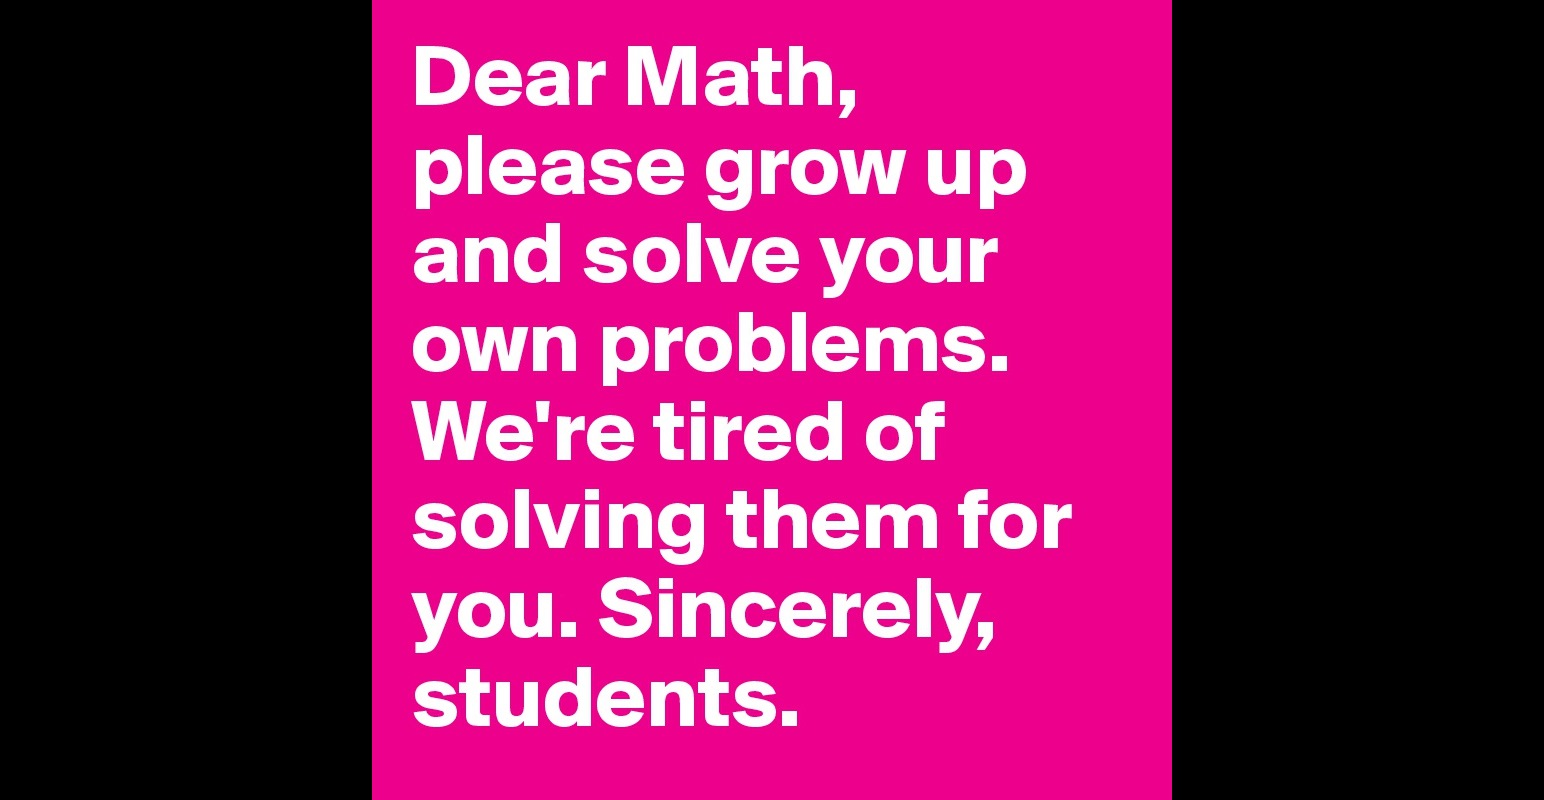 Dear Math, please grow up and solve your own problems. We ...